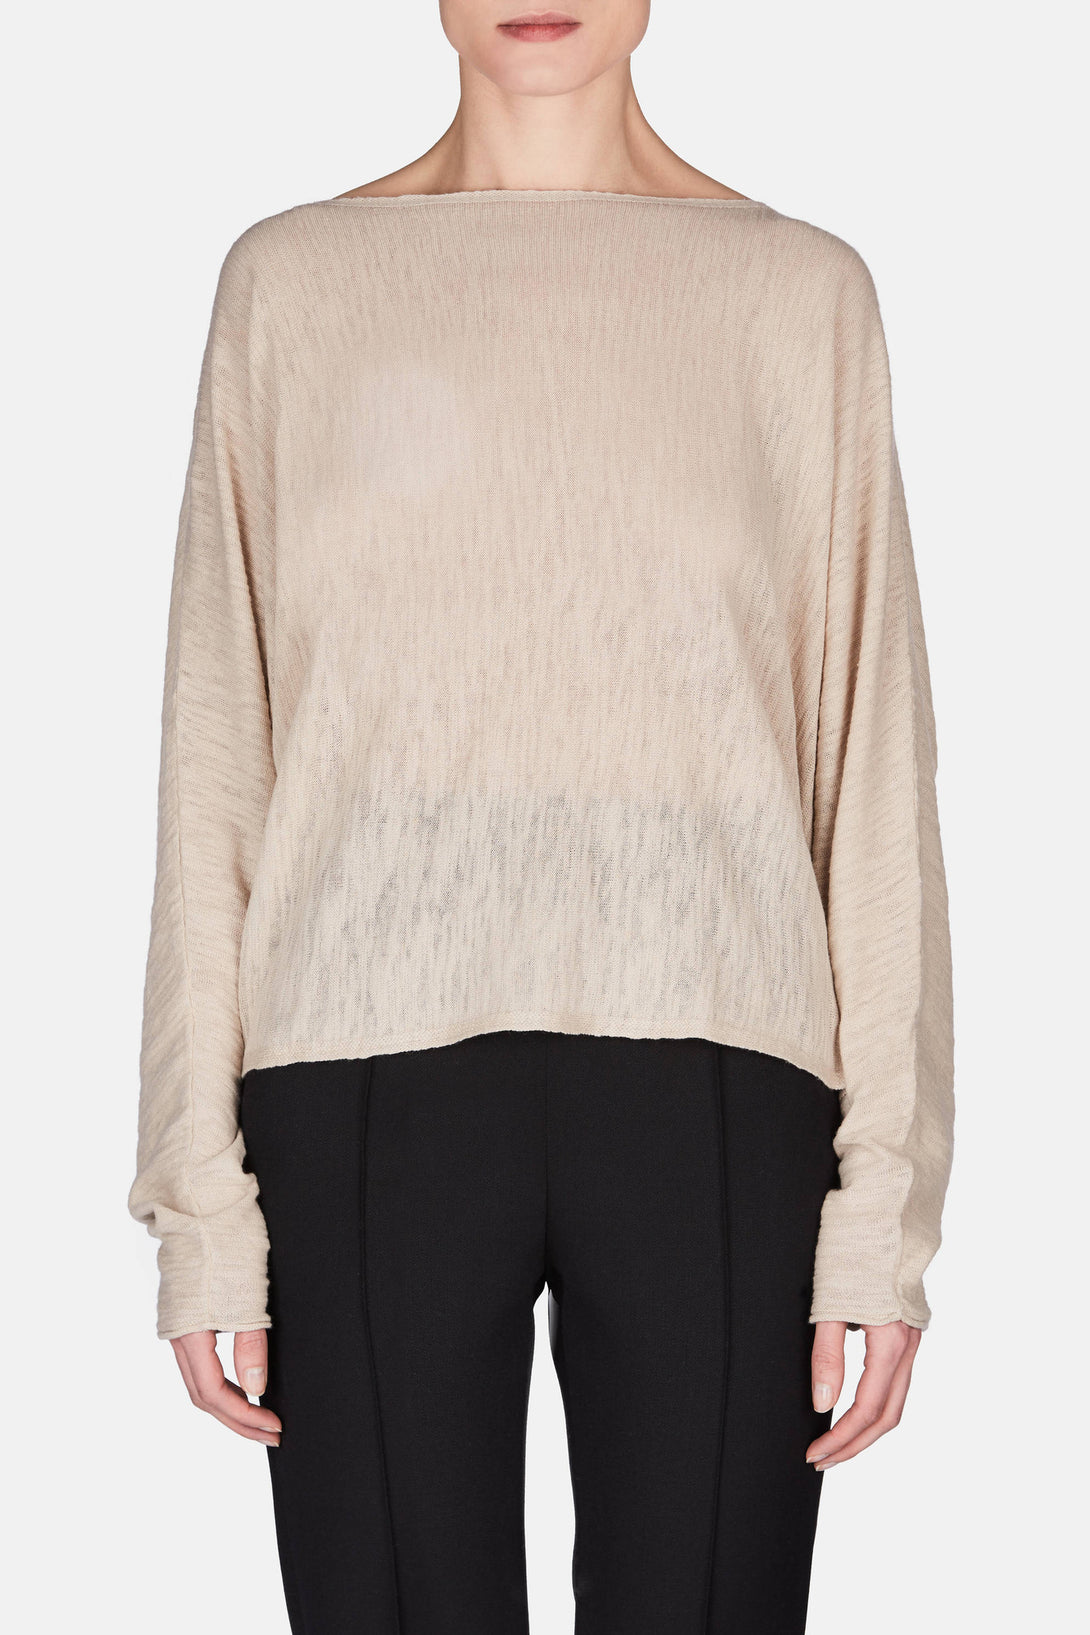 Pienza Sweater - Flax